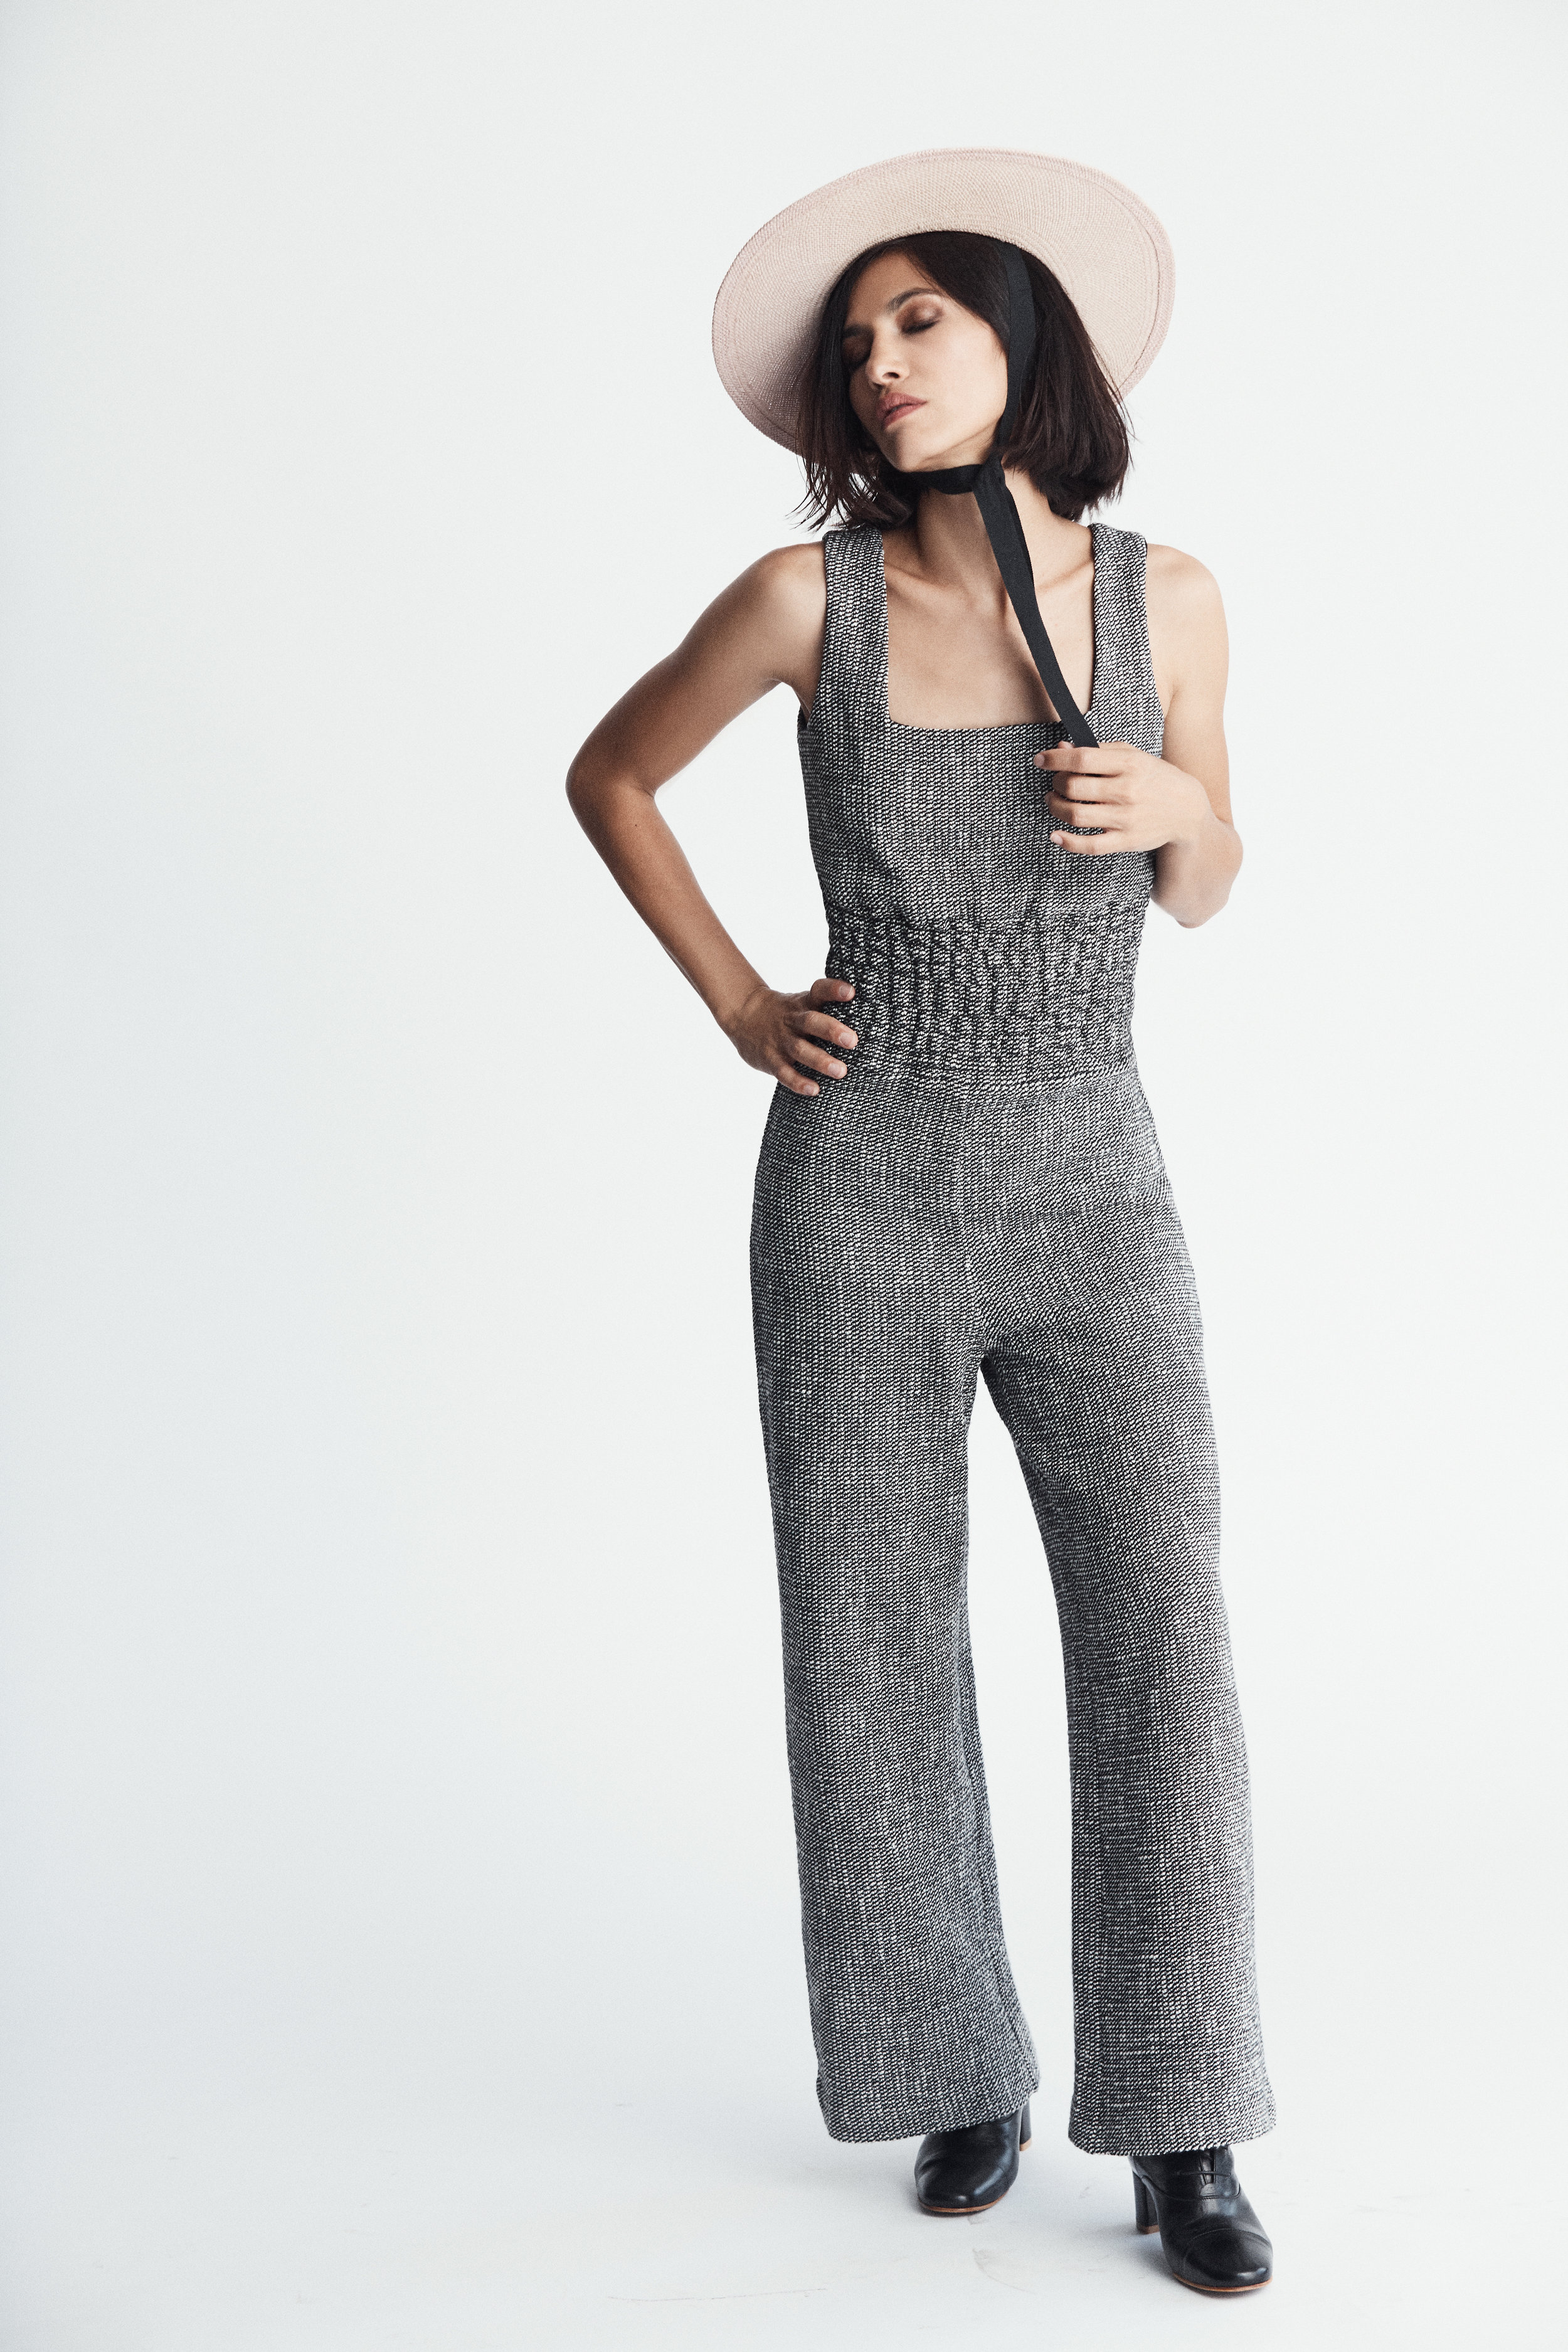 Jumpsuit by   MAJE /   Bloomingdales Beverly Center , Shoes by   BY FAR  , Hat by   GLADYS TAMEZ